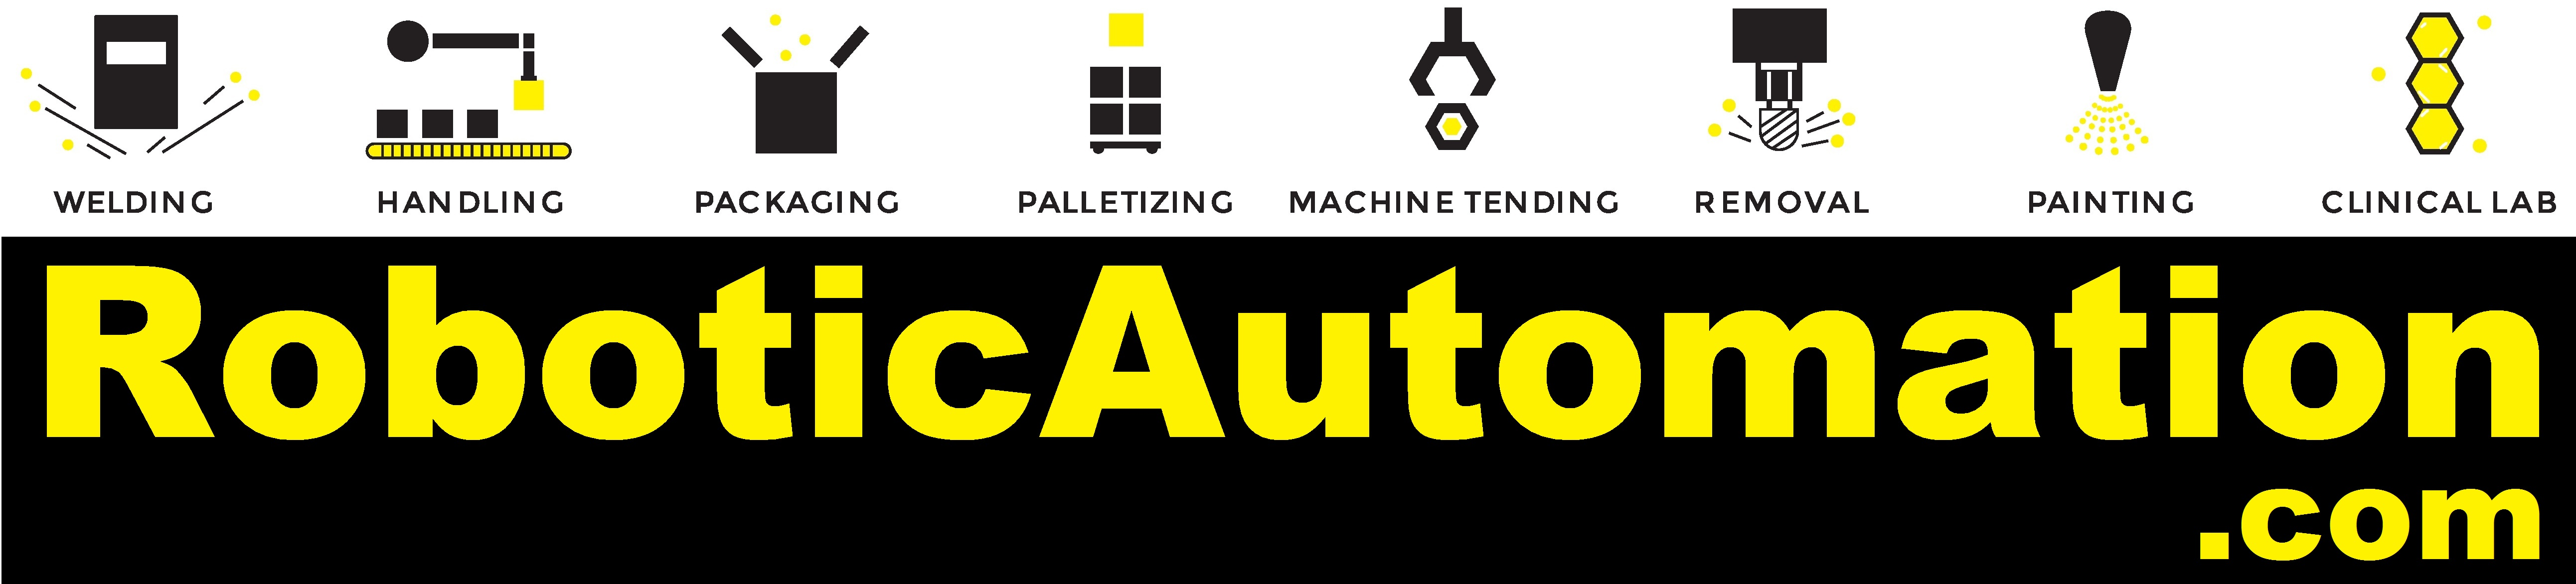 robotic-automation-banner-logos-with-words